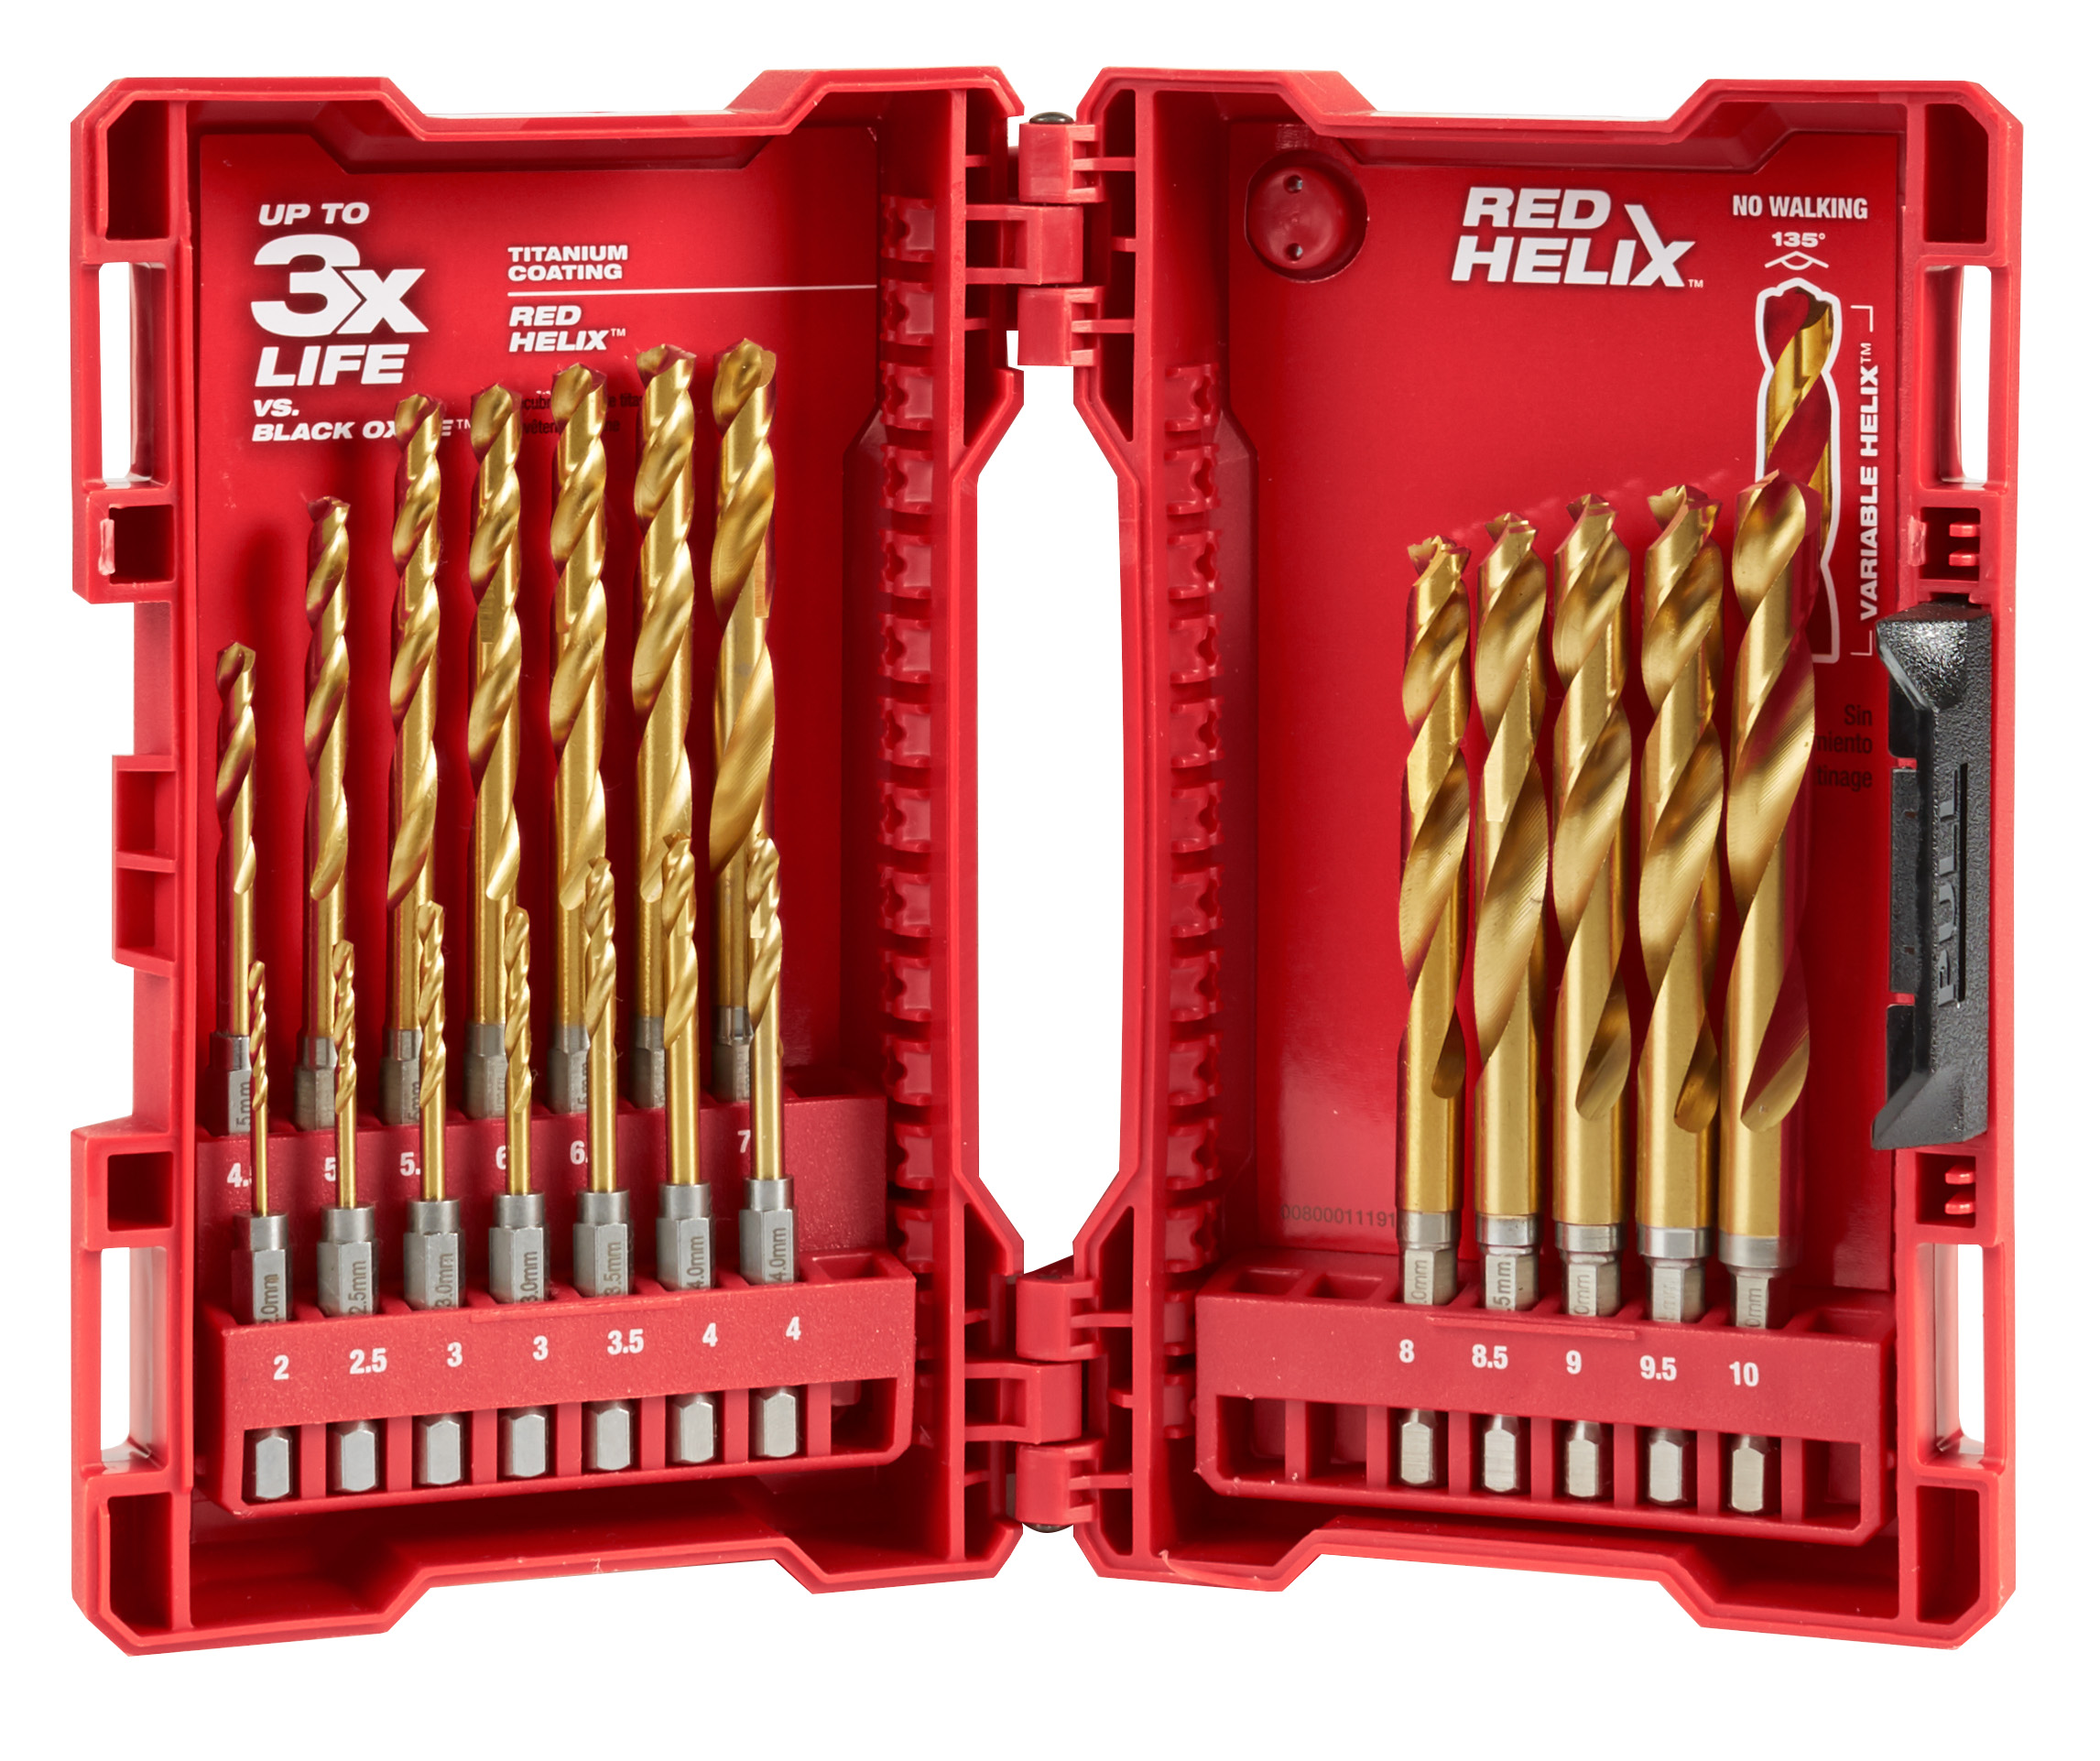 Milwaukee® SHOCKWAVE™ RED HELIX® Impact Duty® 48-89-4860 Drill Bit Set, 2 mm Min Drill Bit, 10 mm Max Drill Bit, 135 deg Drill Point Angle, 19 Pieces, Titanium Coated